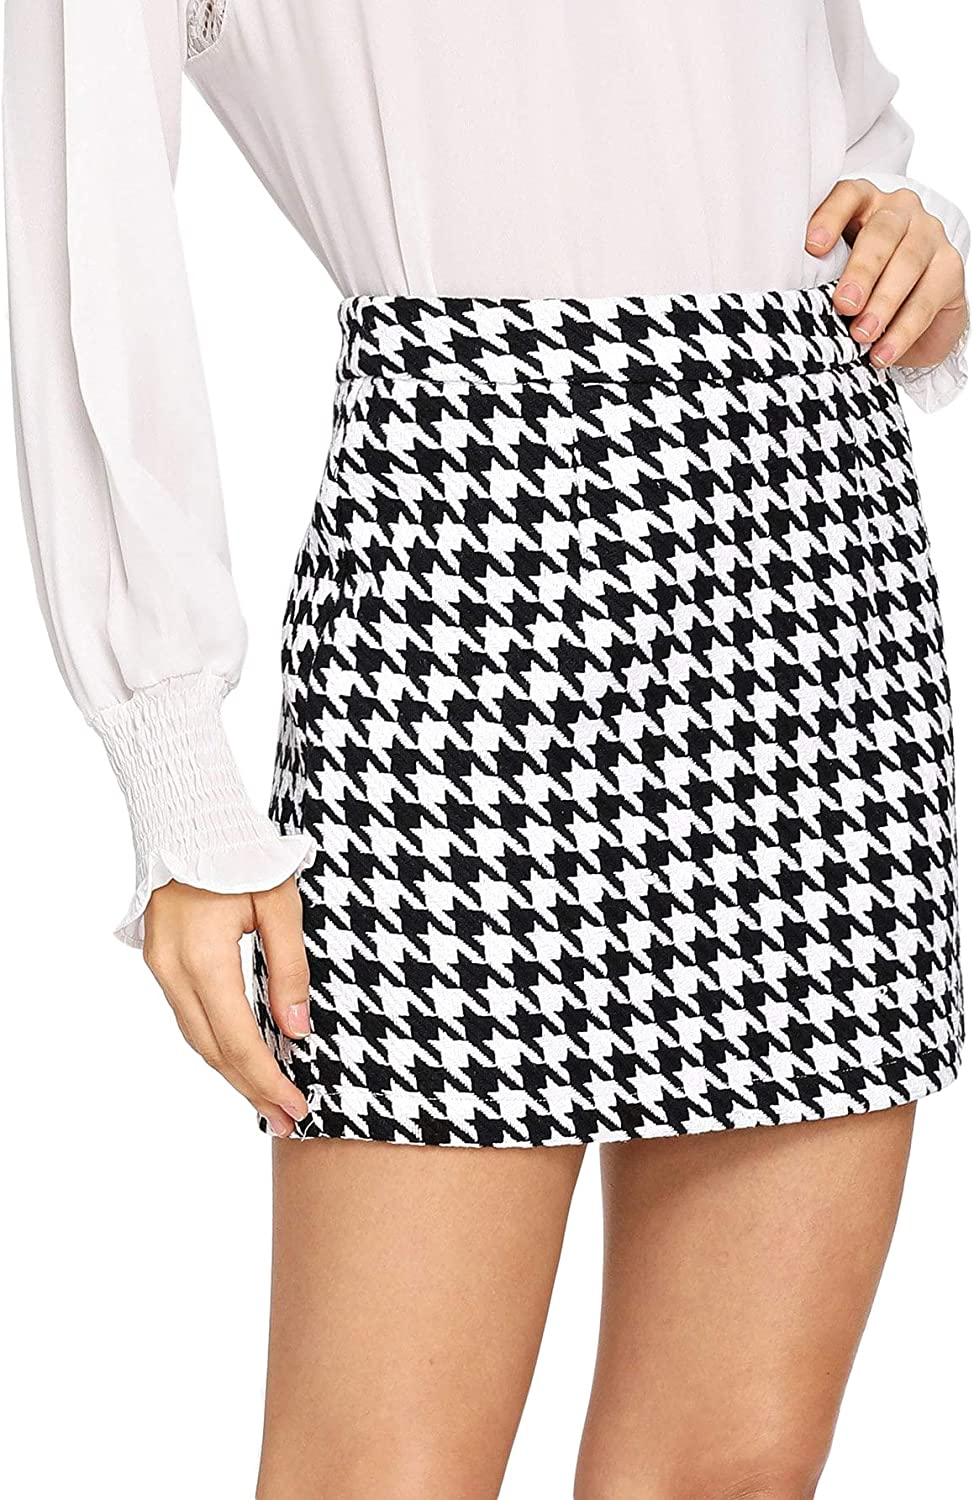 WDIRARA Women's Mid Waist Above Plaid Skirt Outlet ☆ Free Shipping Knee Mini Casual Ranking TOP9